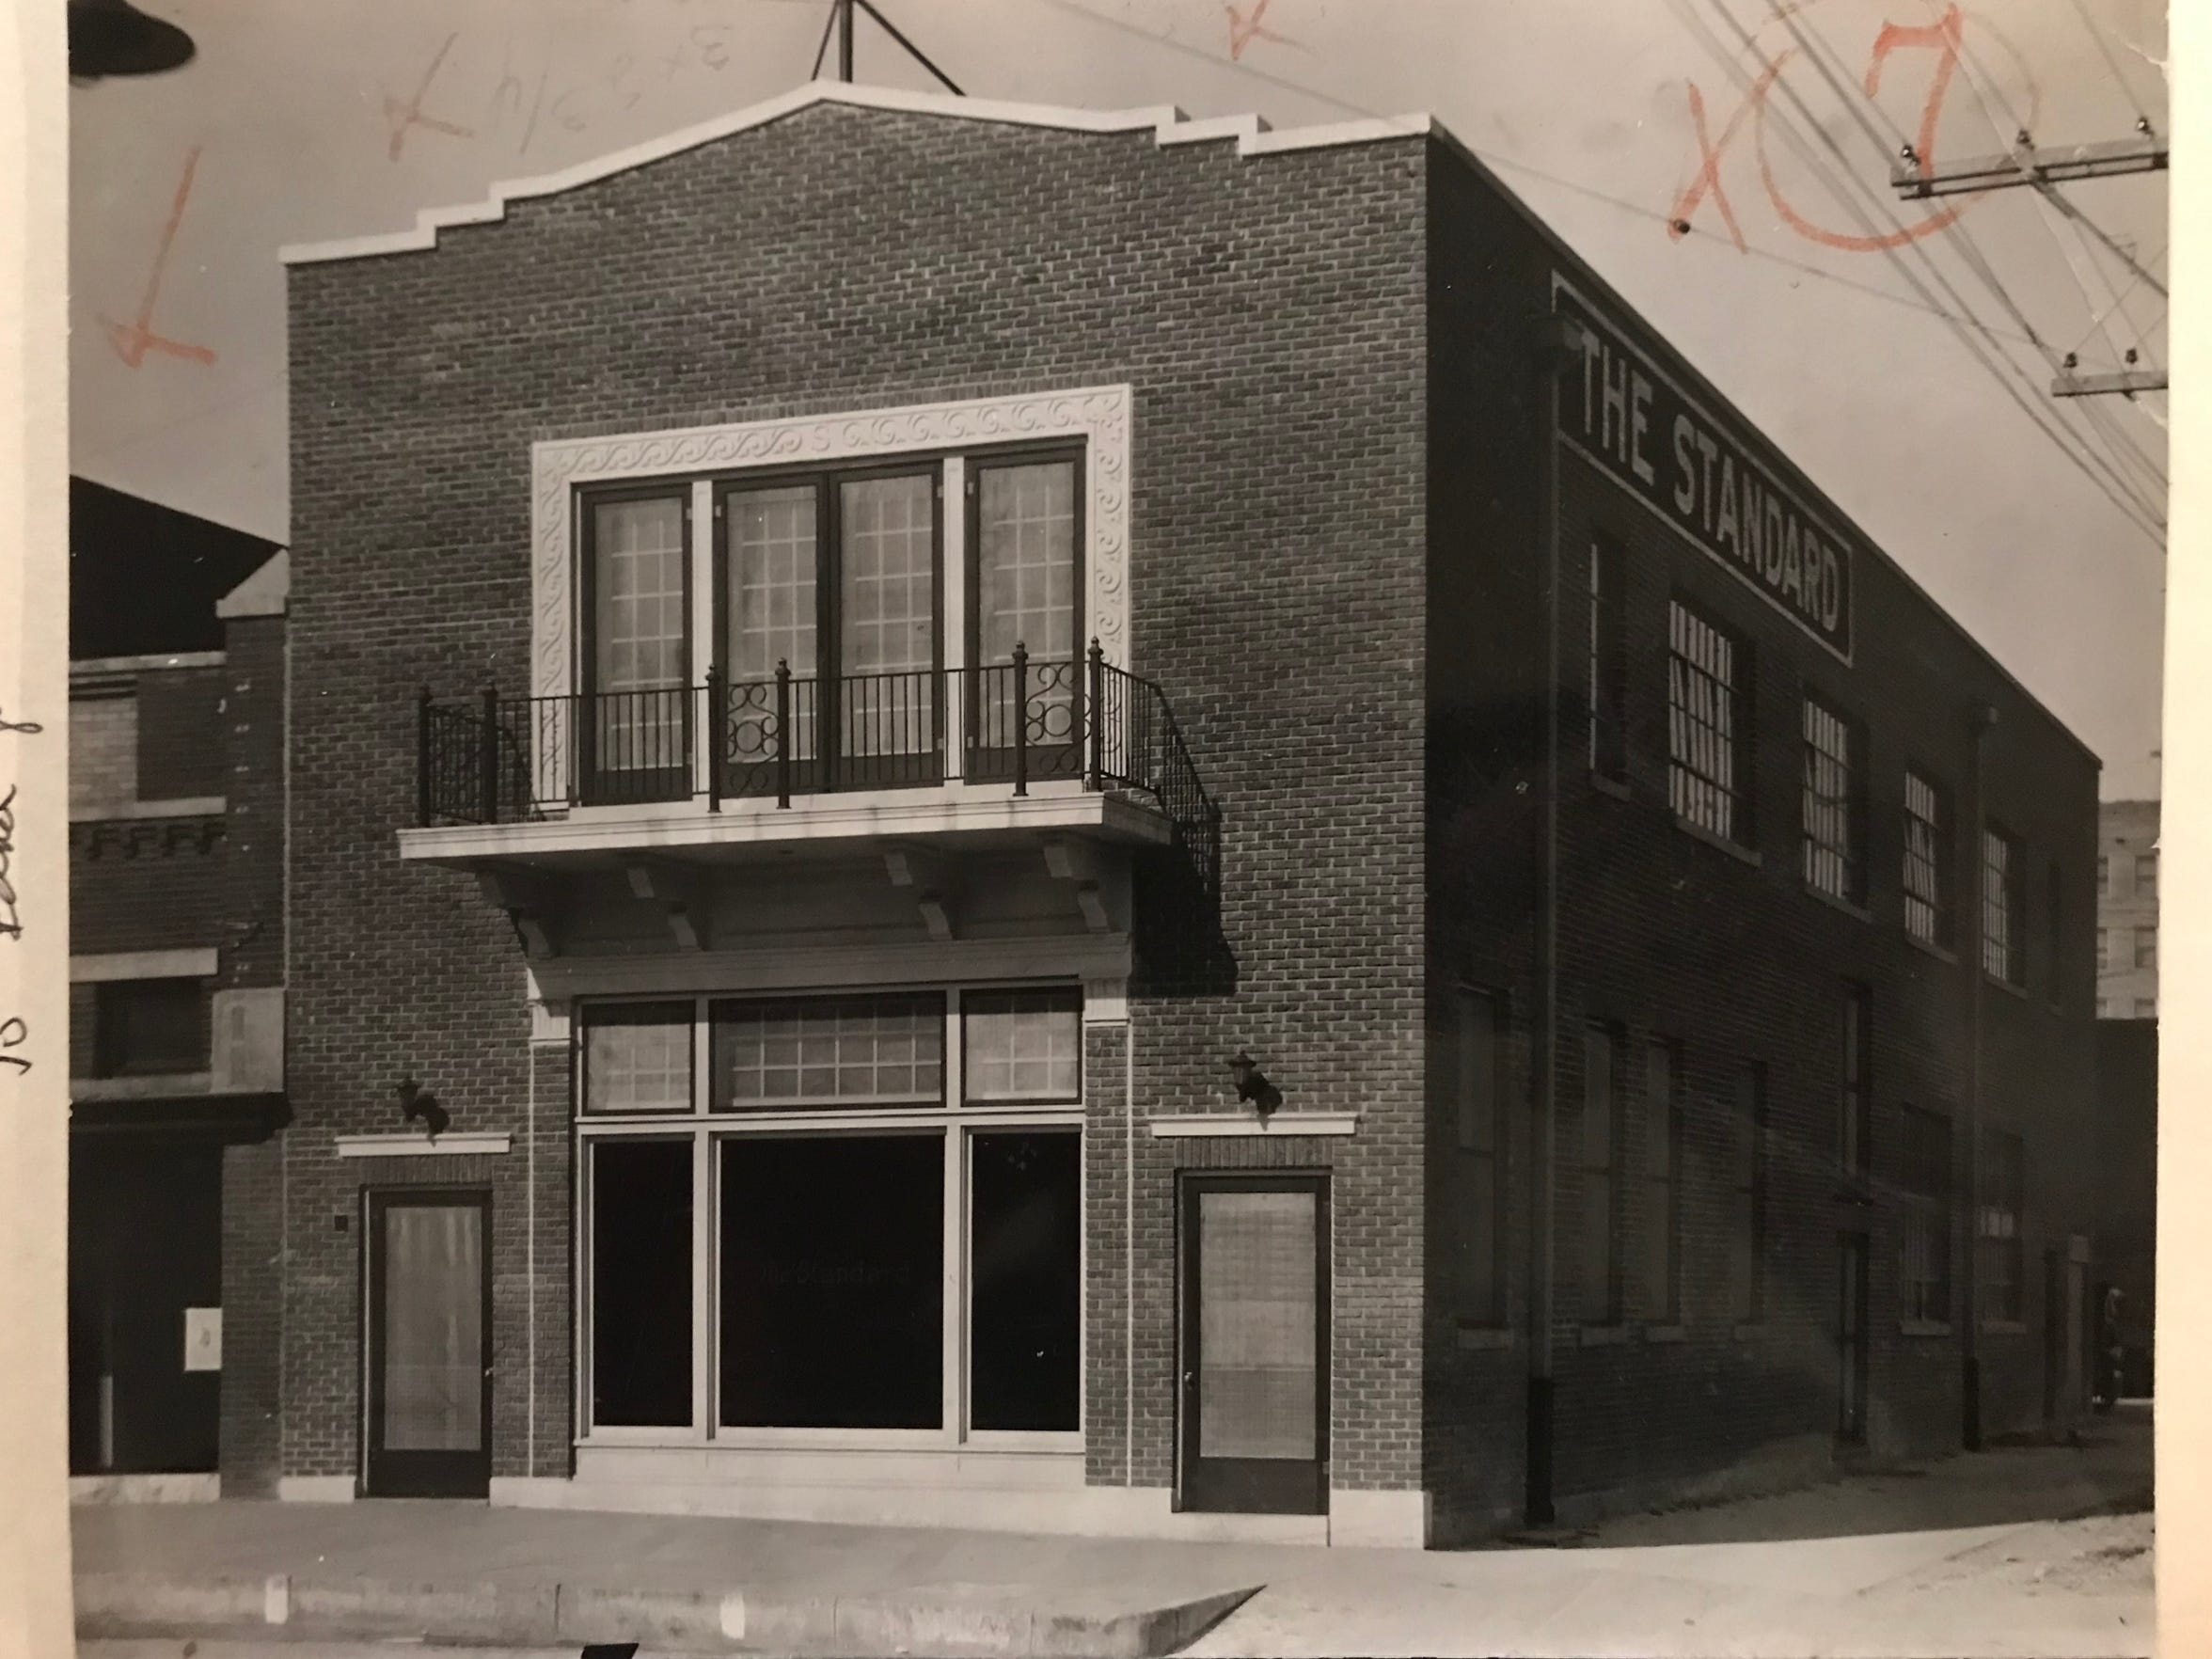 The Standard was located at 19 N. Chadbourne St. in San Angelo from 1925 to 1951, and from this building, Publisher Houston Harte turned the business into the premier news-gathering organization in West Texas.